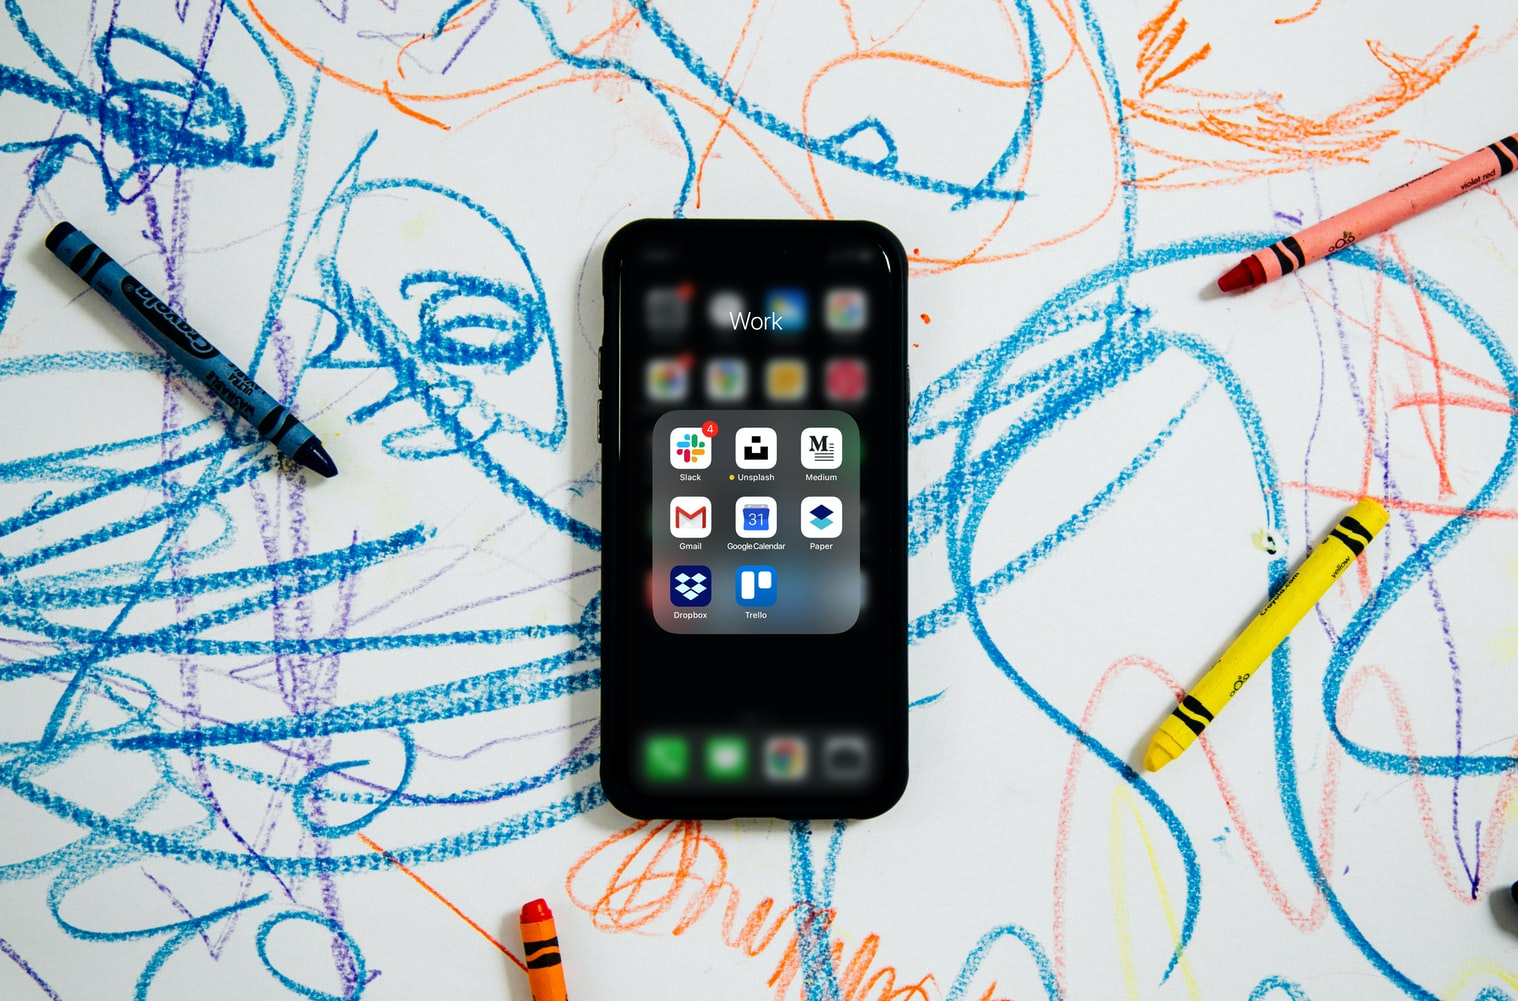 An iPhone surrounded by crayon scribbles